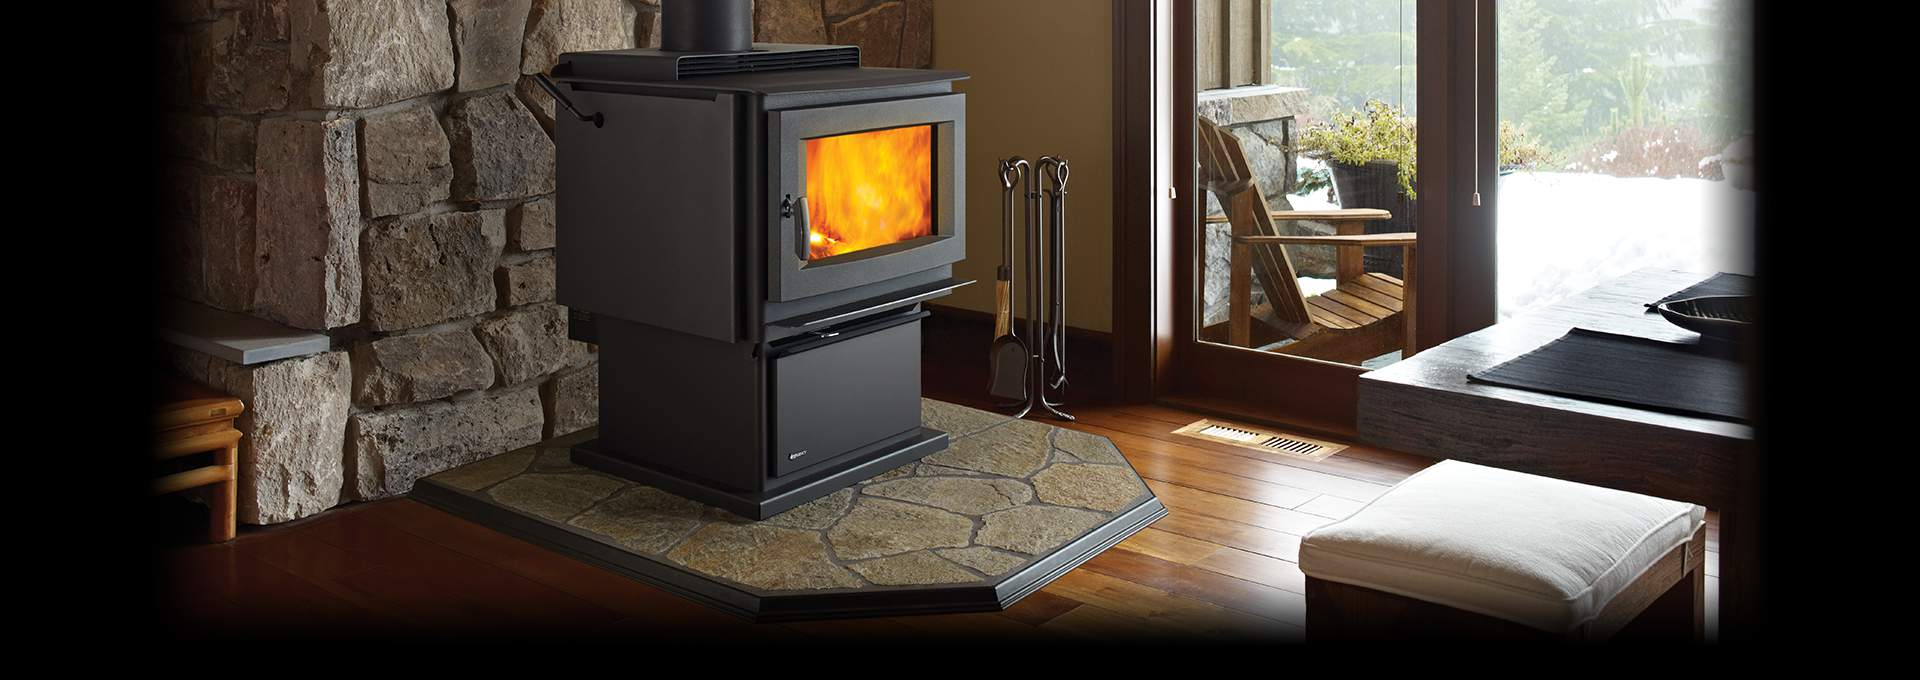 frimley images sale stoves fireplace green l burning for fireplaces boilerplate embers wood